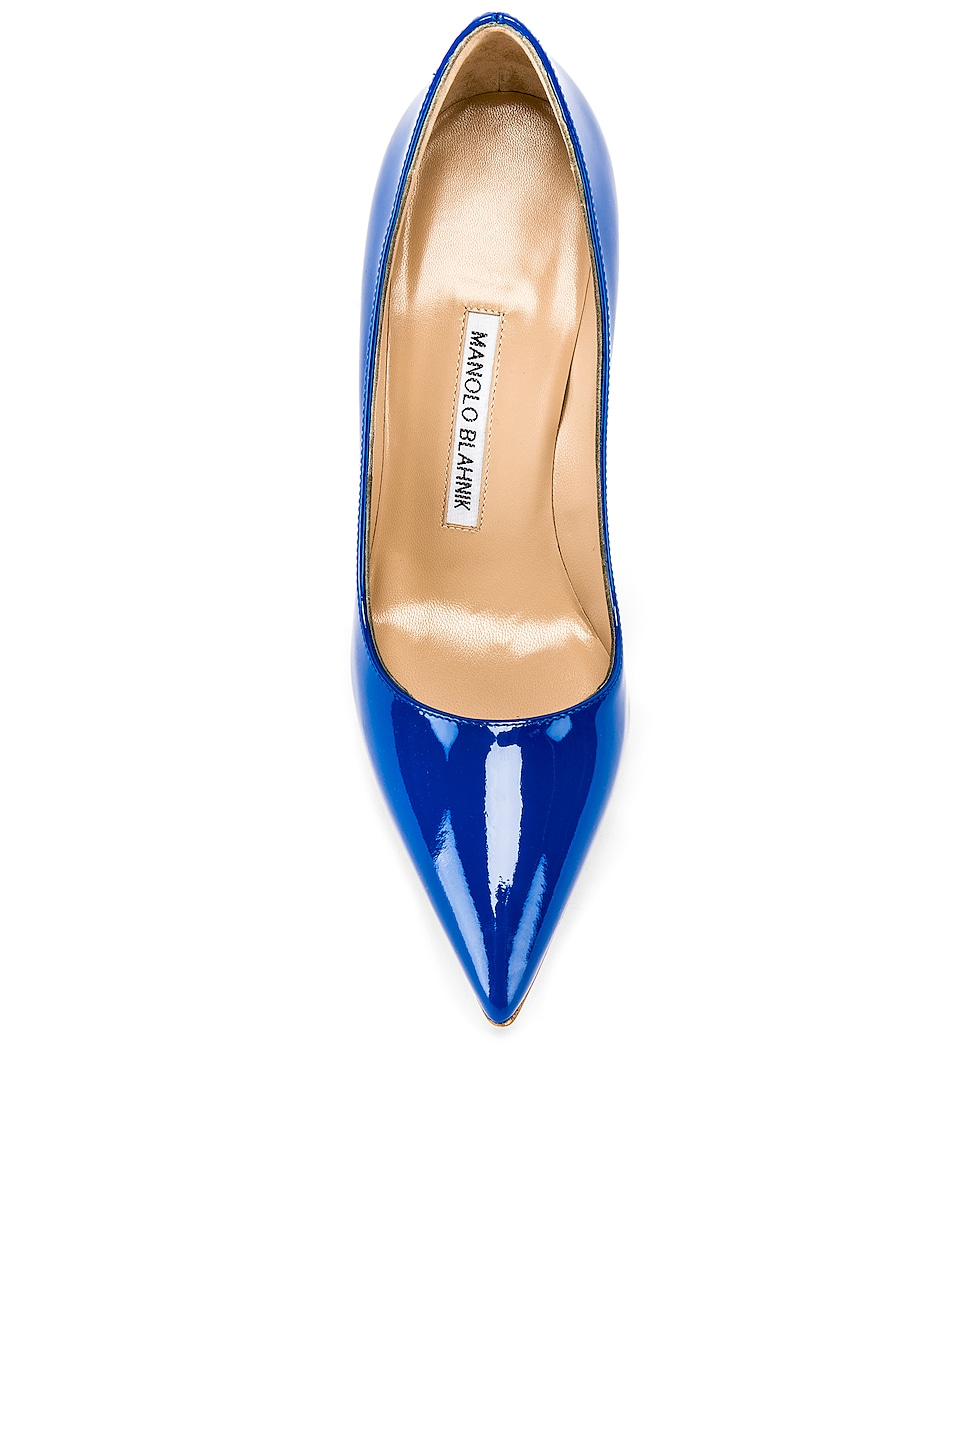 Image 4 of Manolo Blahnik BB Pump in Electric Blue Patent